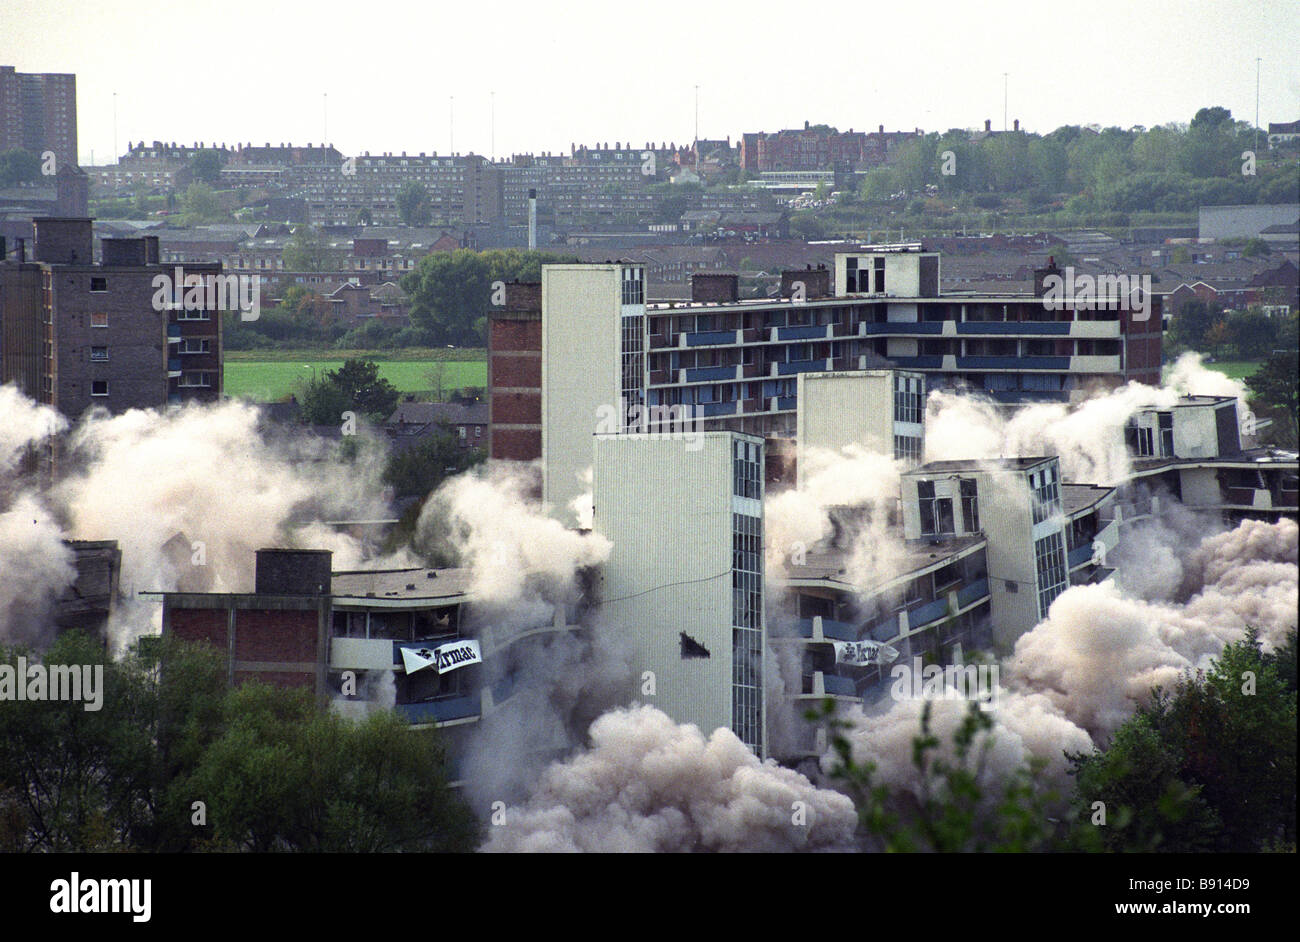 High rise flats demolished in Salford Greater Manchester England Uk 14 10 90 - Stock Image